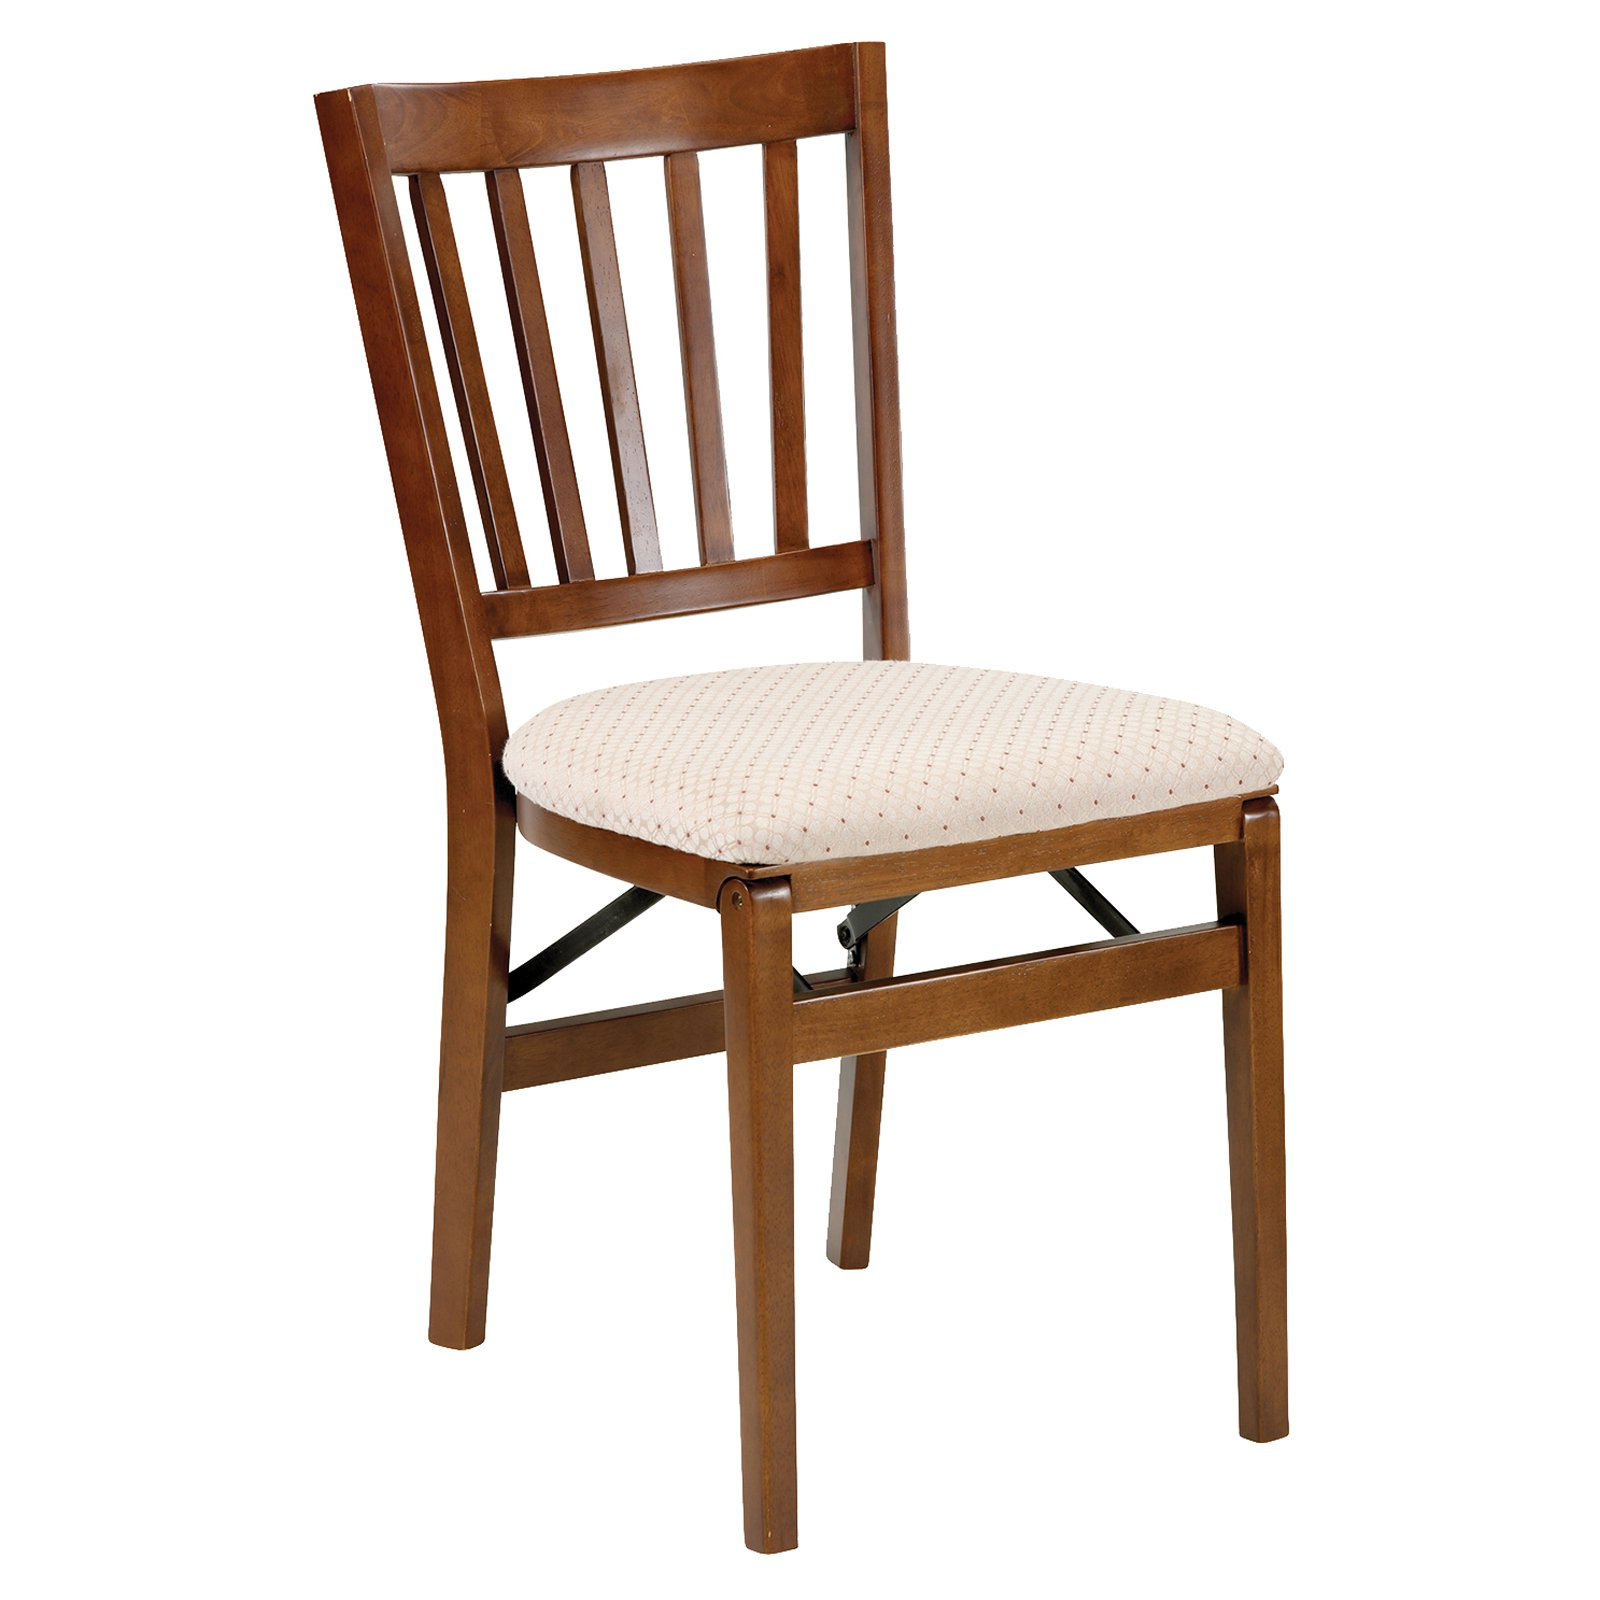 wood chairs chair off buy hand rustic second folding